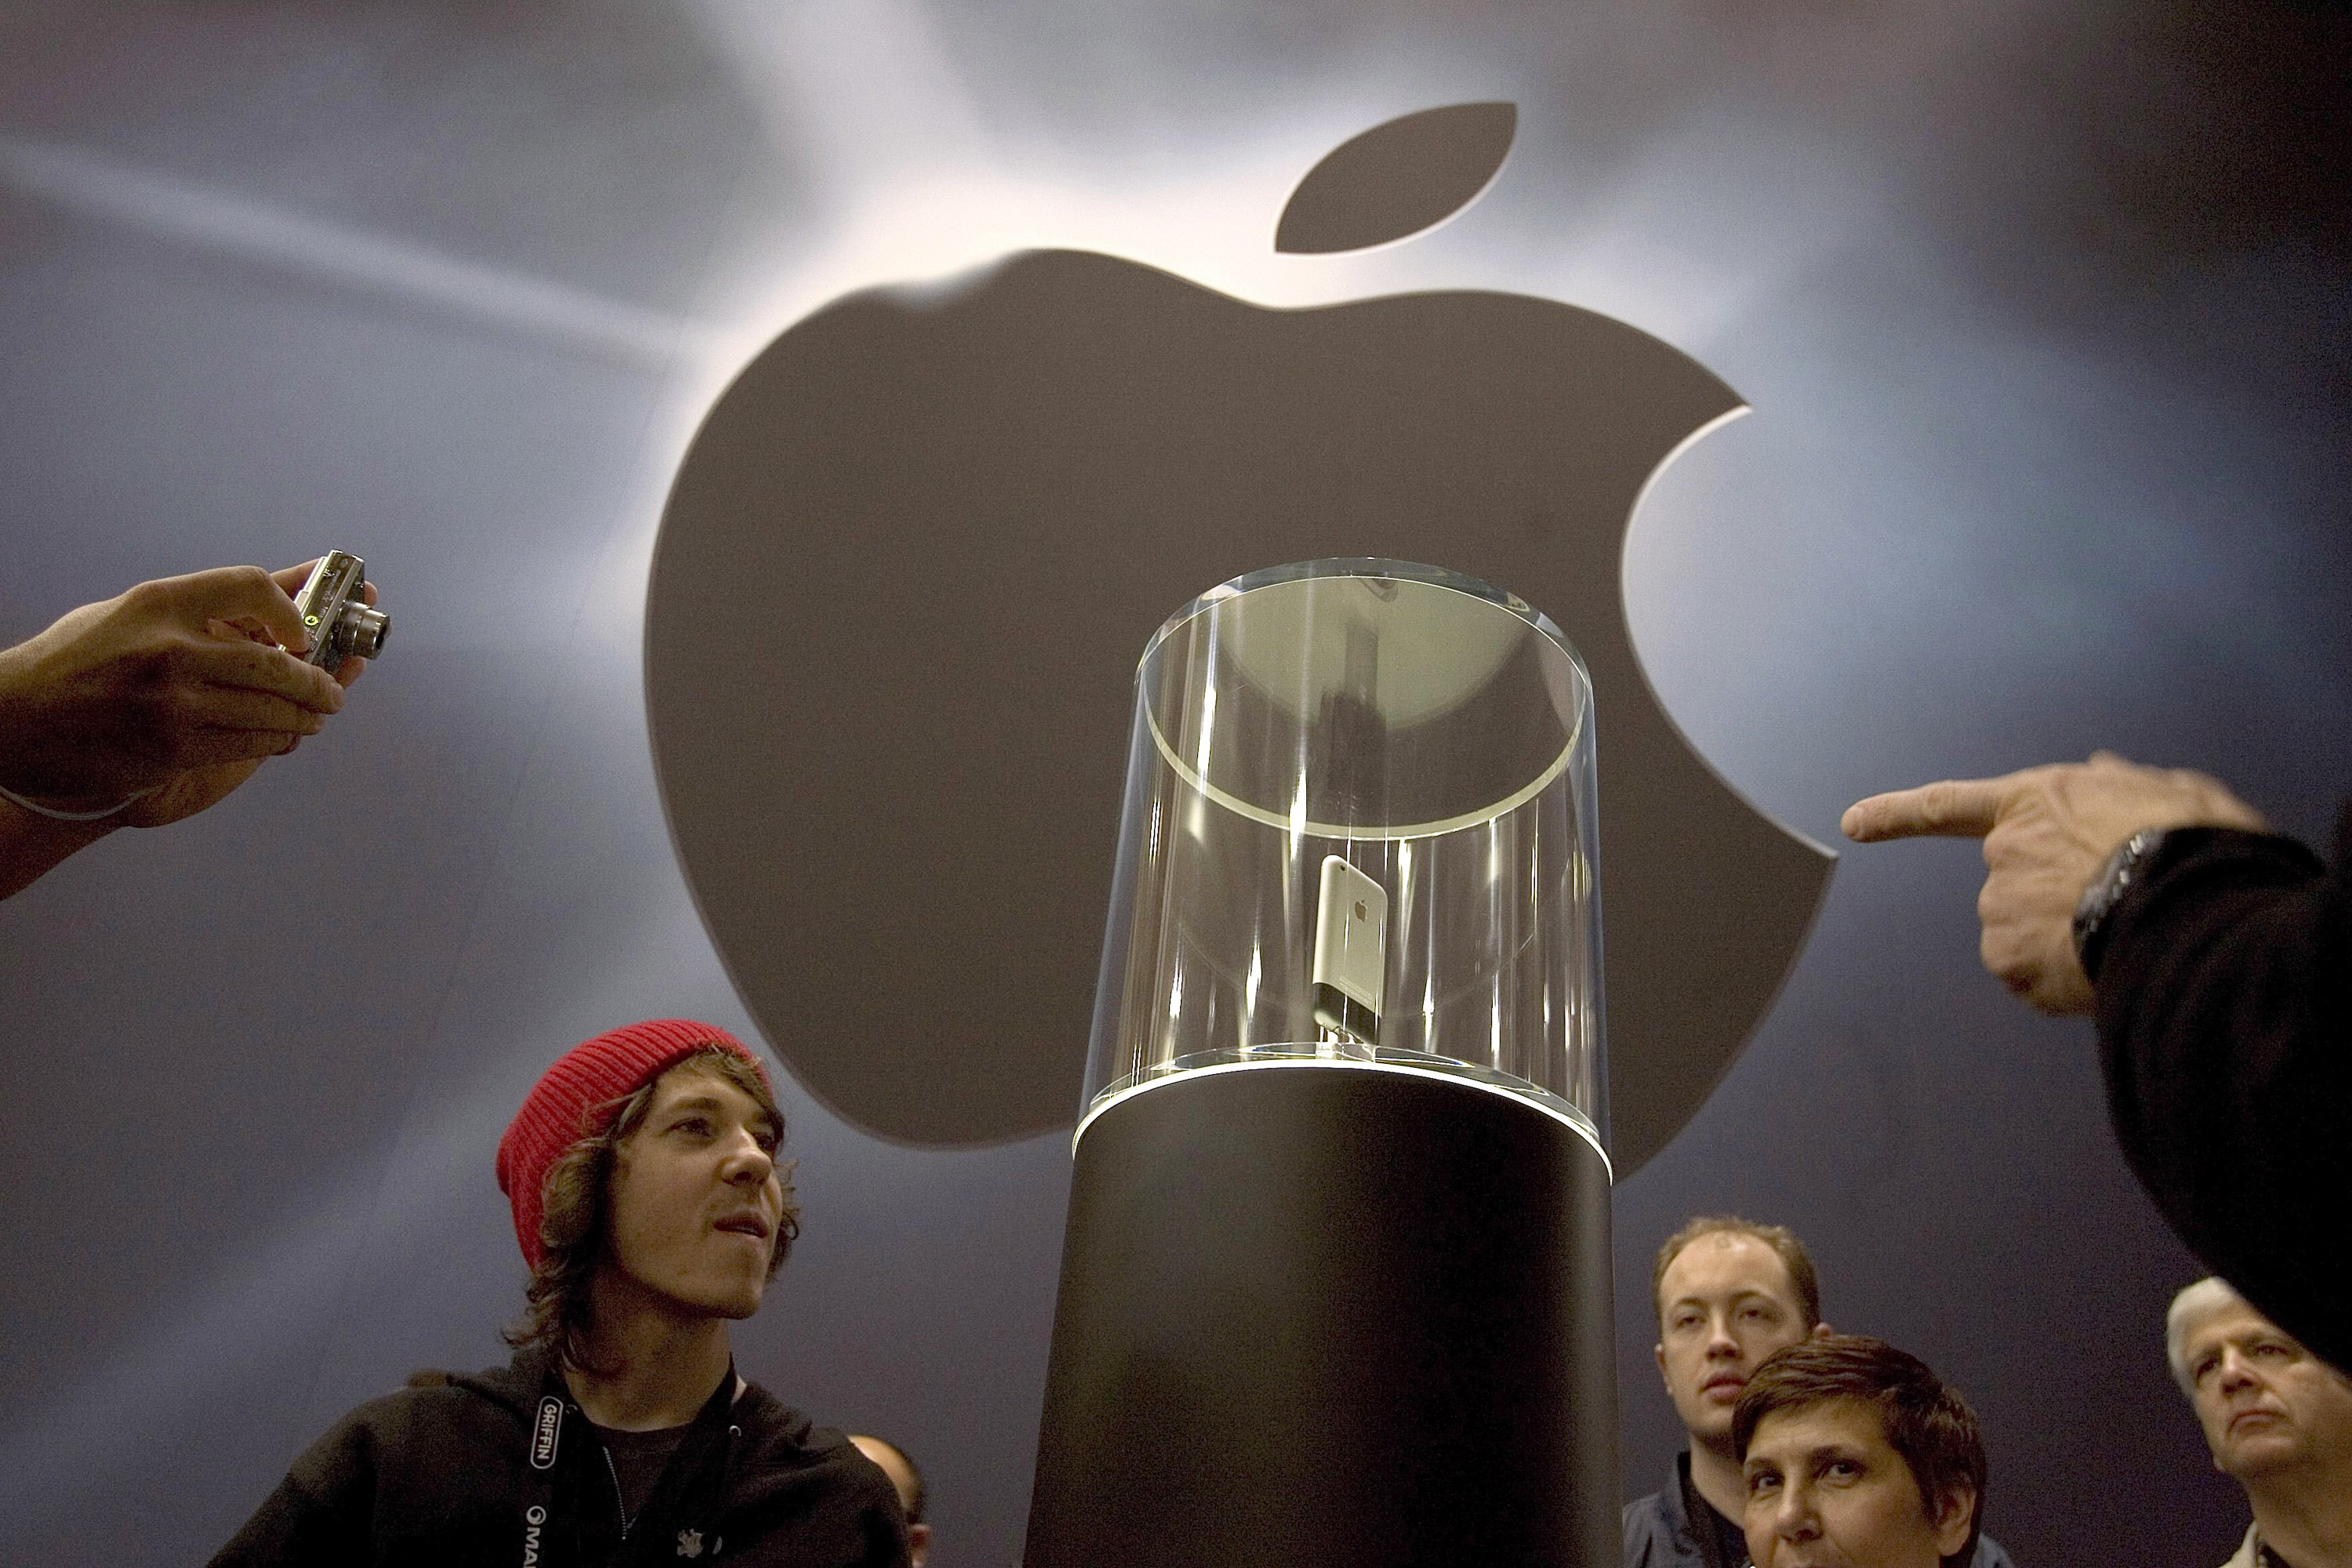 Apple released the first iPhone on June 29, 2007. An 8GB model launched with a price point of $599.